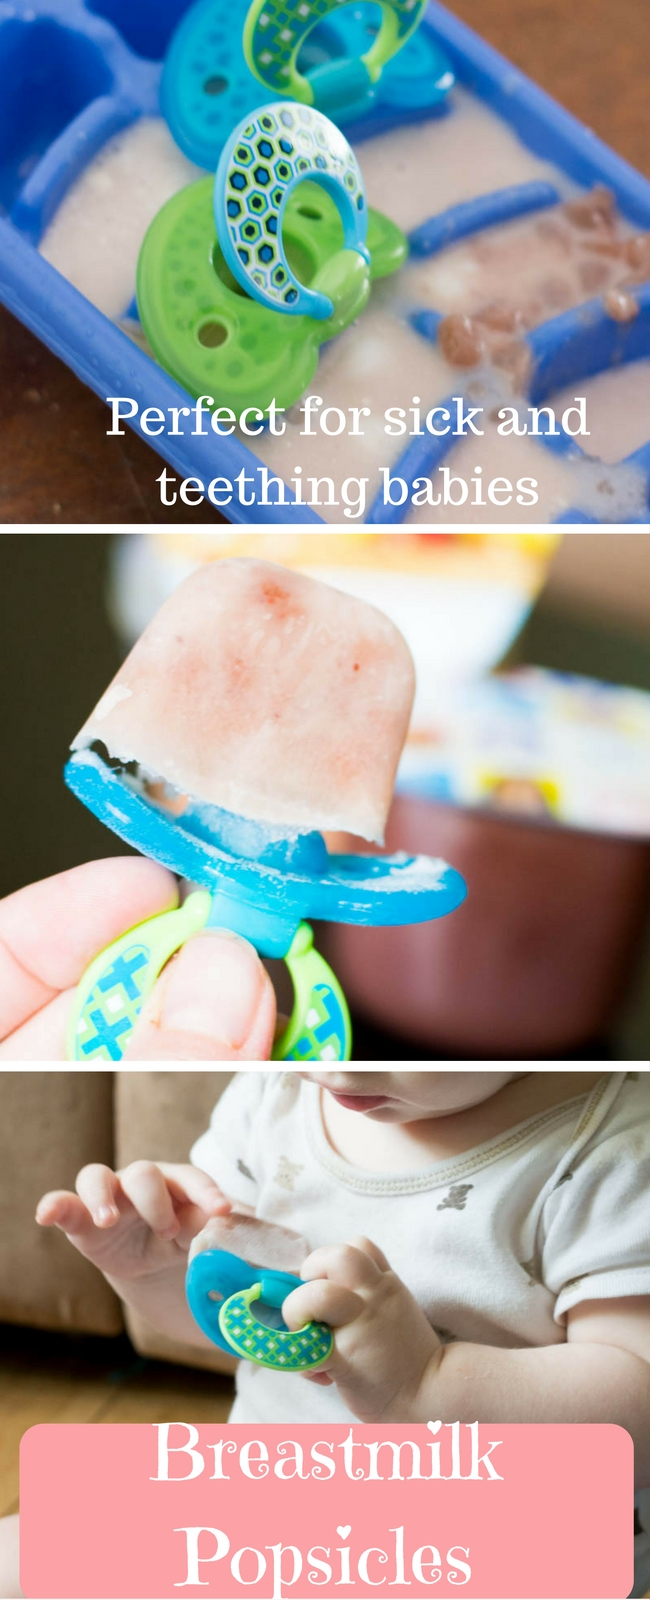 Breastmilk popsicles are great for sick and teething babies, or to give them a healthy treat that makes them feel like the big kids! These ones use baby food purees to make them even tastier!